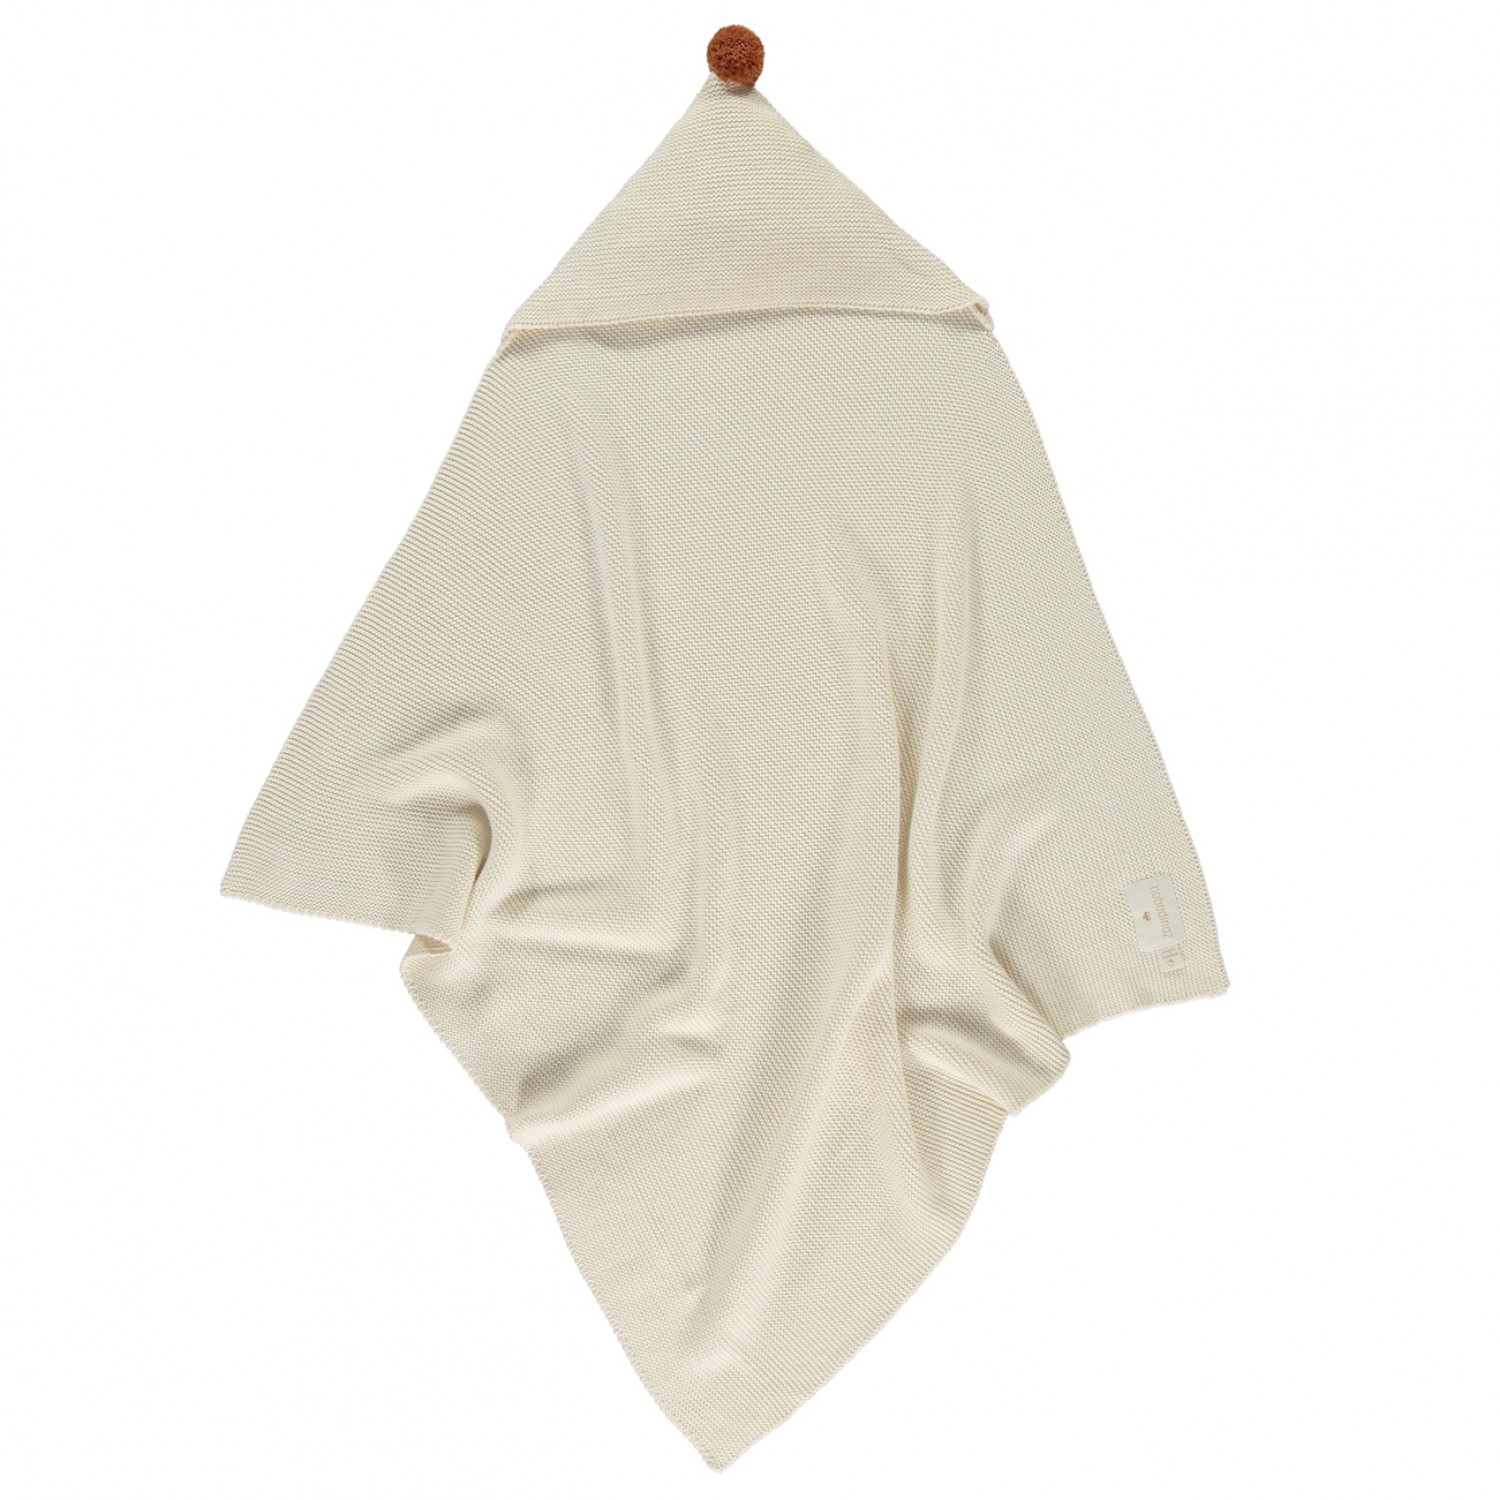 So Natural knitted baby cape • Natural